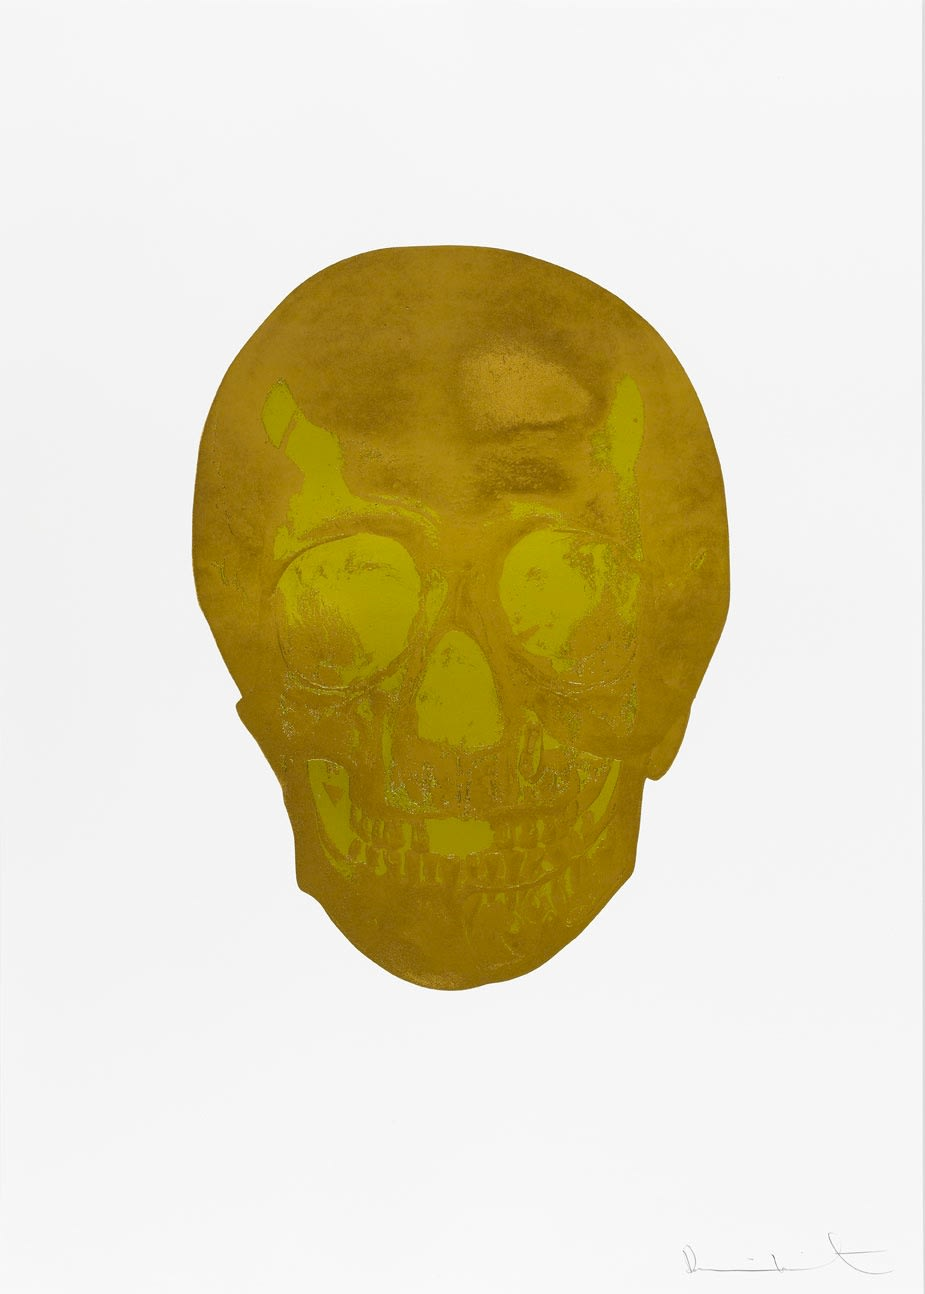 Damien Hirst Death Or Glory European Gold/Oriental Gold Glorious Skull, 2011 2 colour foil block on 300gsm Arches 88 archival paper. Signed and numbered. Published by Paul Stolper and Other Criteria. White aluminium powder coated frame. 72 x 51 cm; Framed 76.8 x 55.8 cm OC8374 Edition of 2